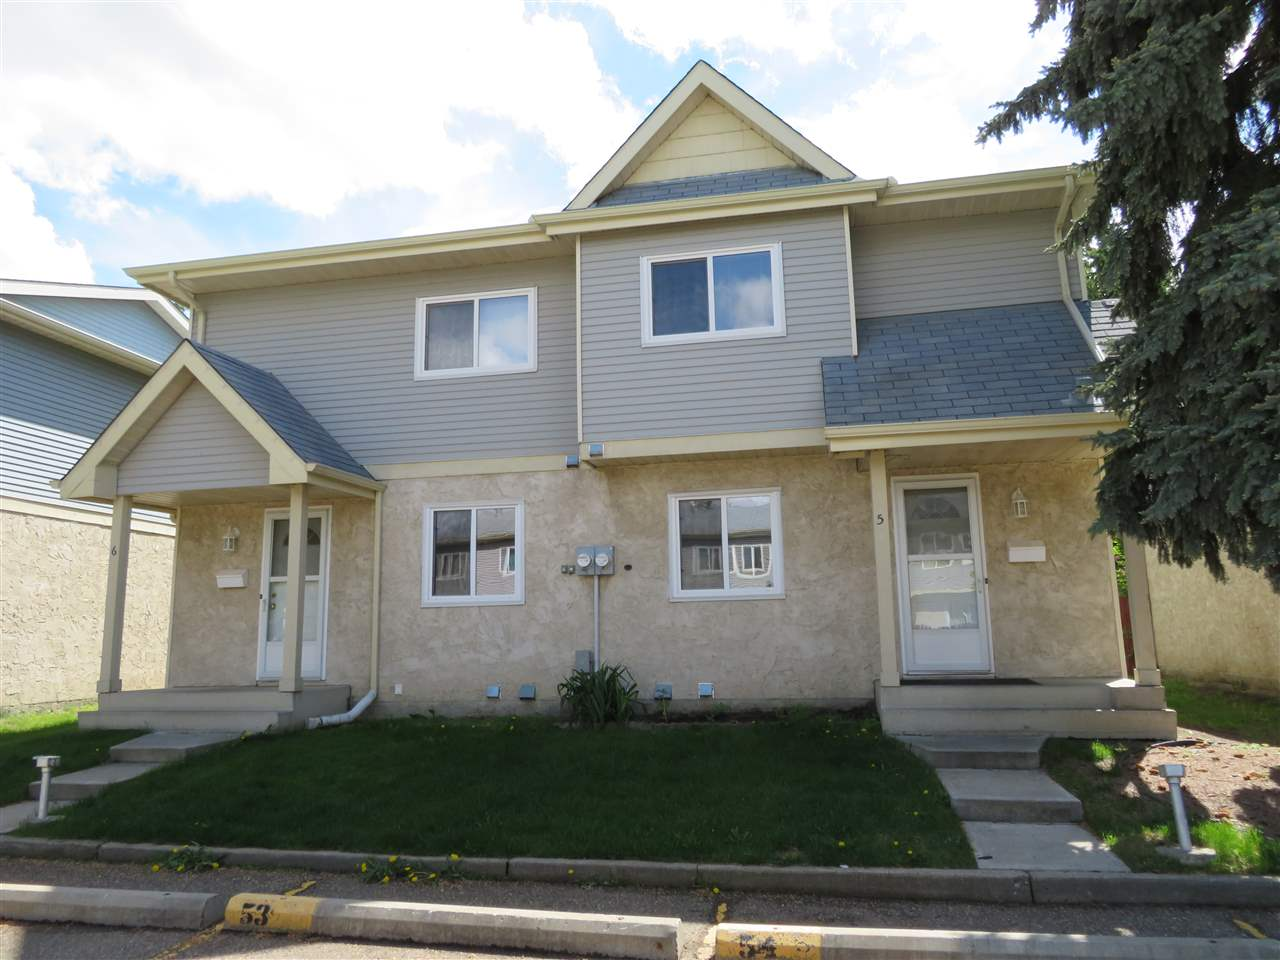 Main Photo: 5 9619 180 Street in Edmonton: Zone 20 Townhouse for sale : MLS(r) # E4067545